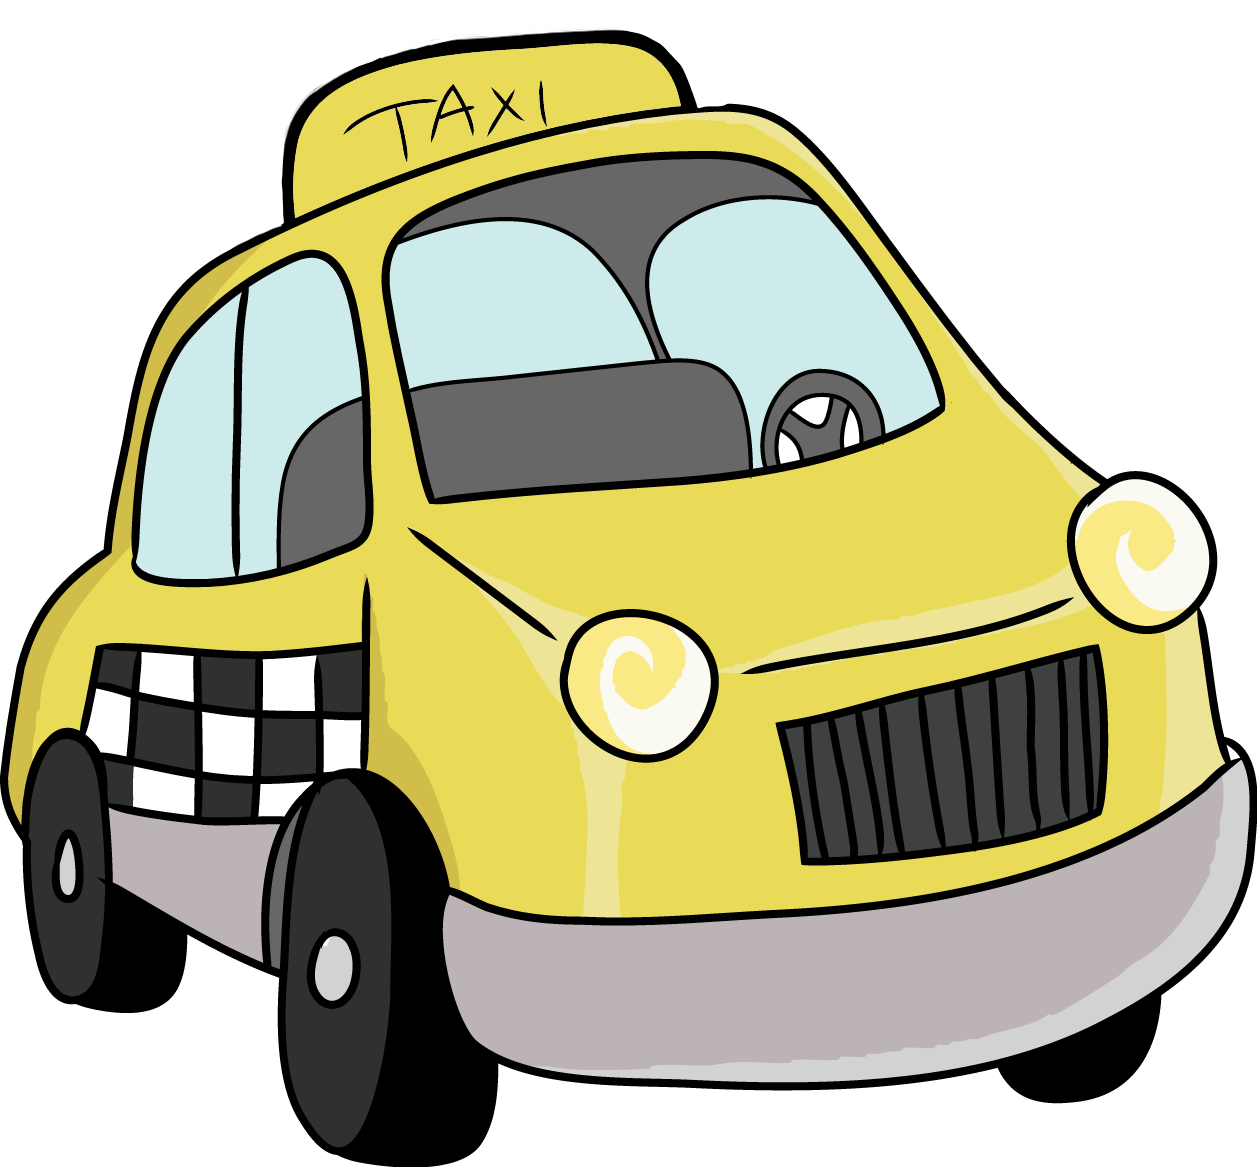 638 Car Png free clipart.